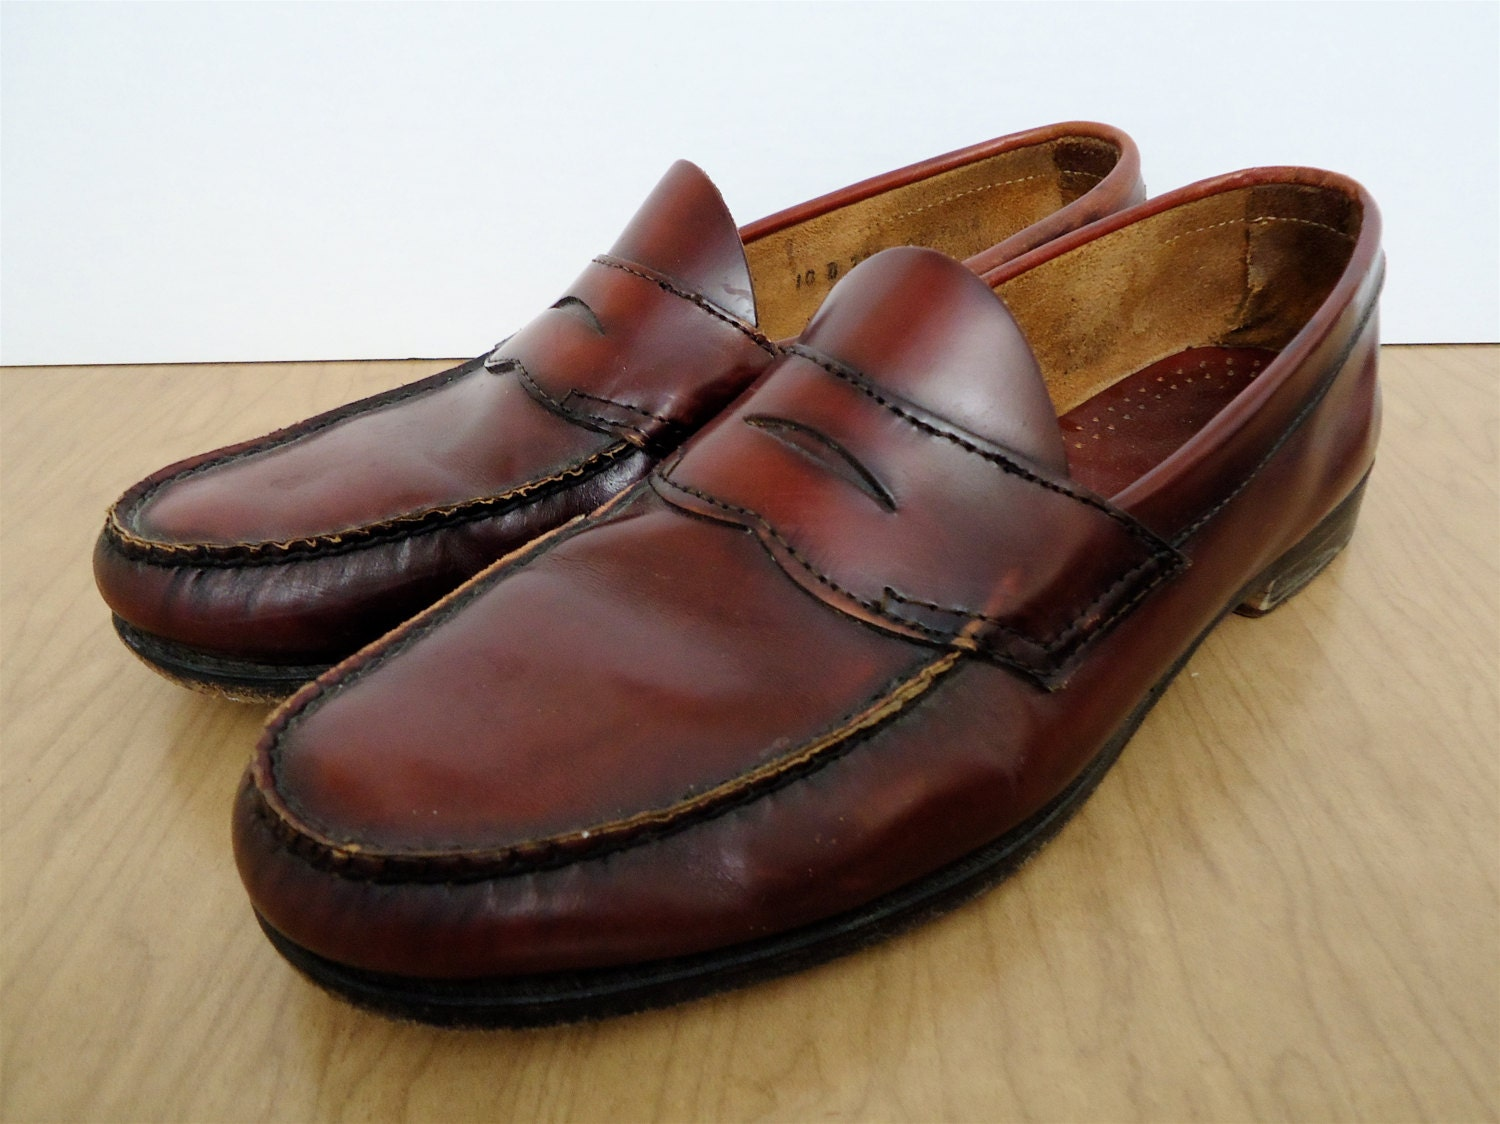 Bass Weejuns / oxblood penny loafers / vintage cordovan